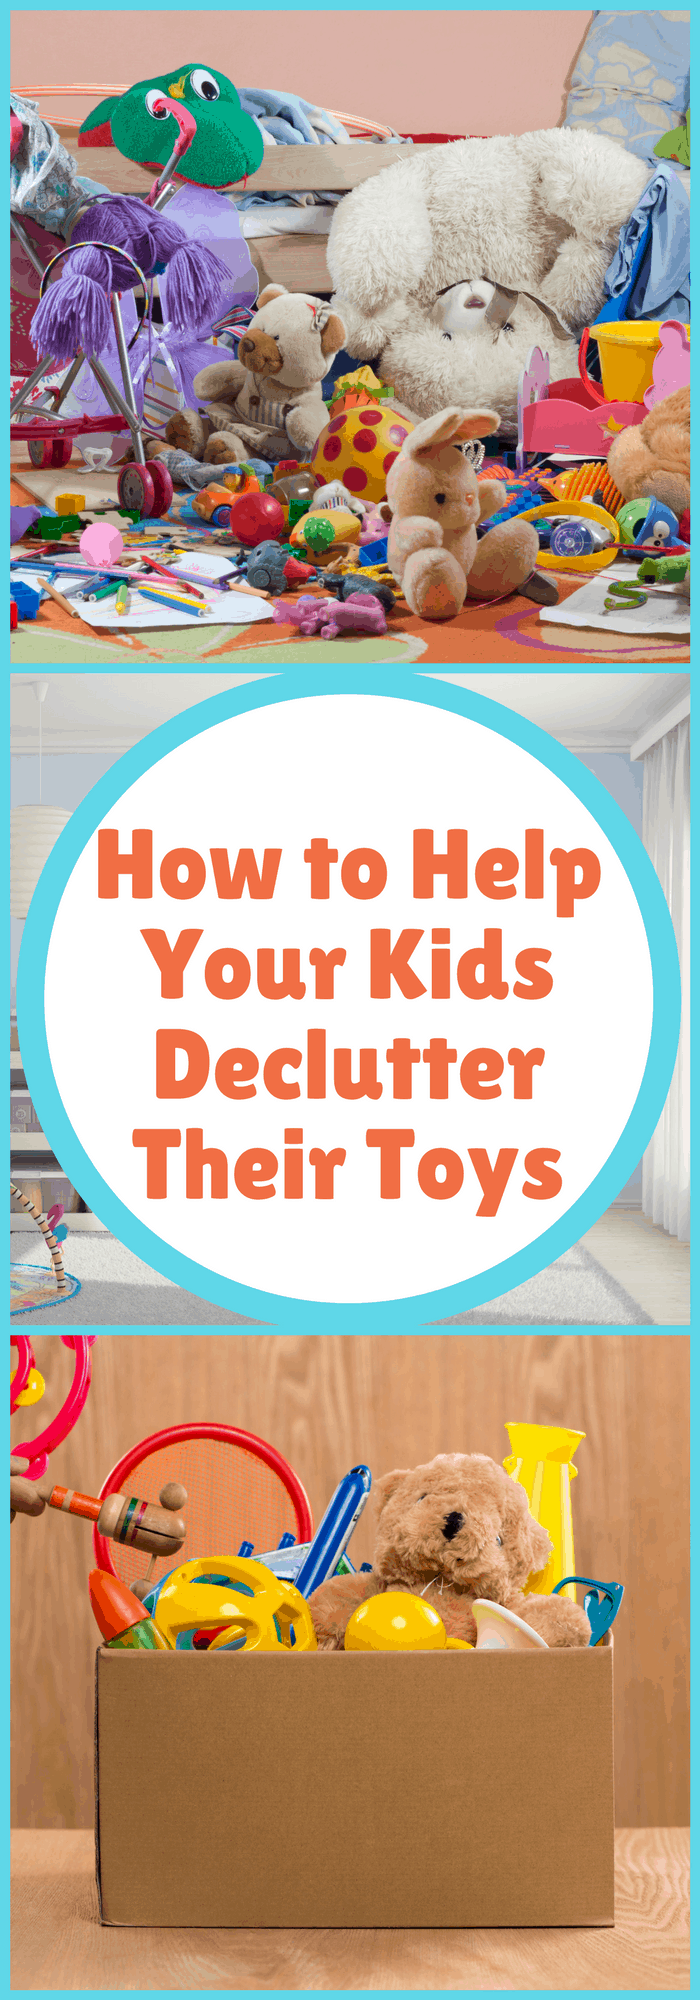 Organization--How to Help Your Kids Declutter Their Toys--The Organized Mom